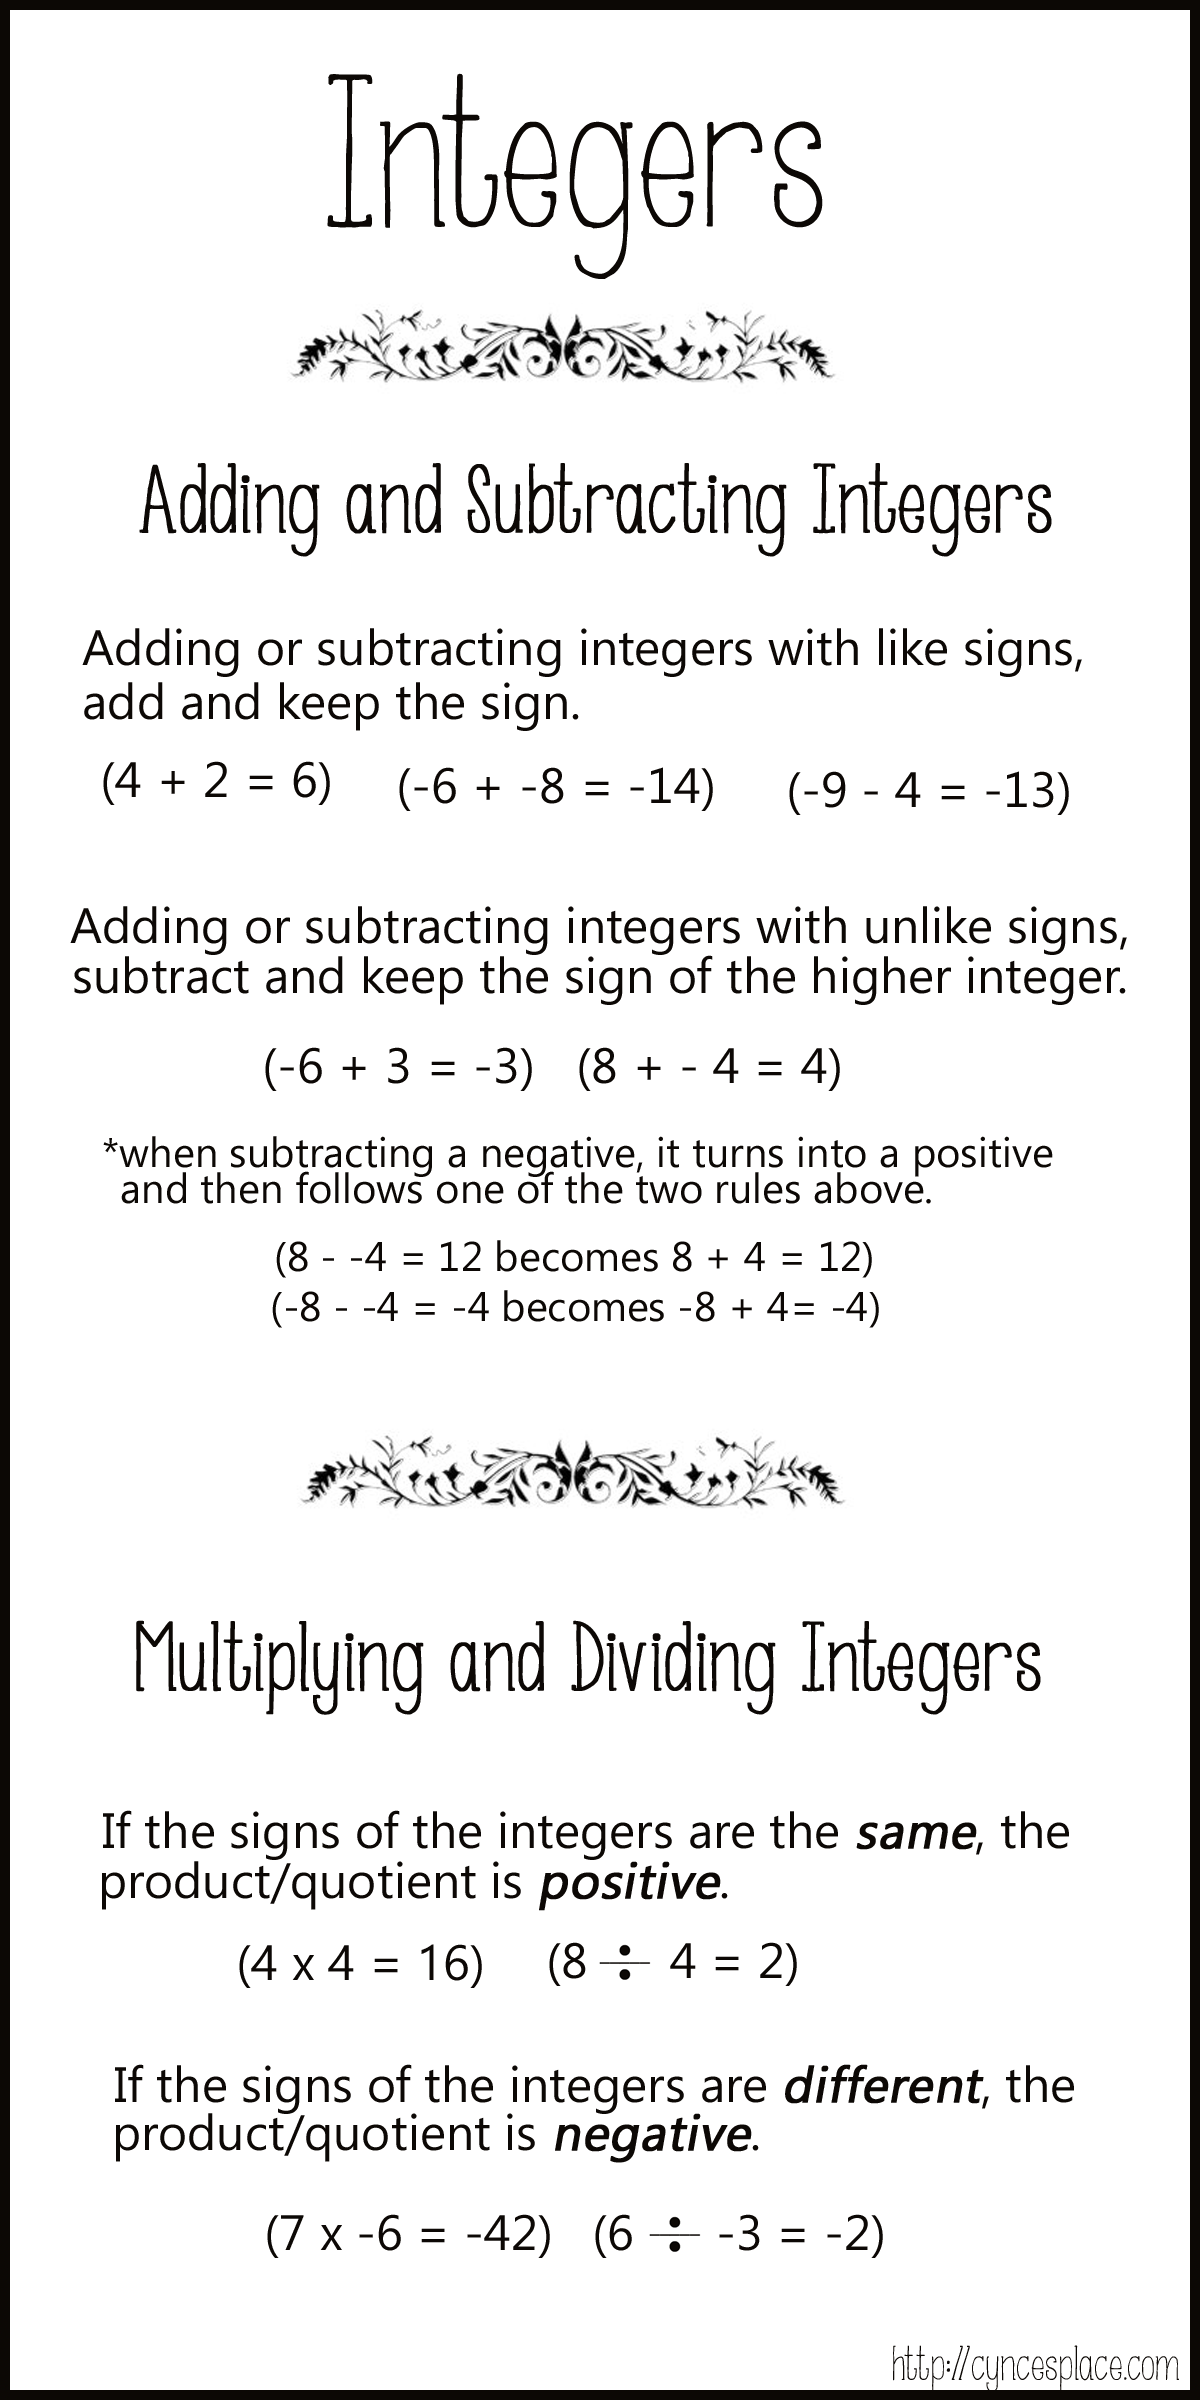 hight resolution of adding-subtracting-multiplying-and-dividing-integers-chart-3 1